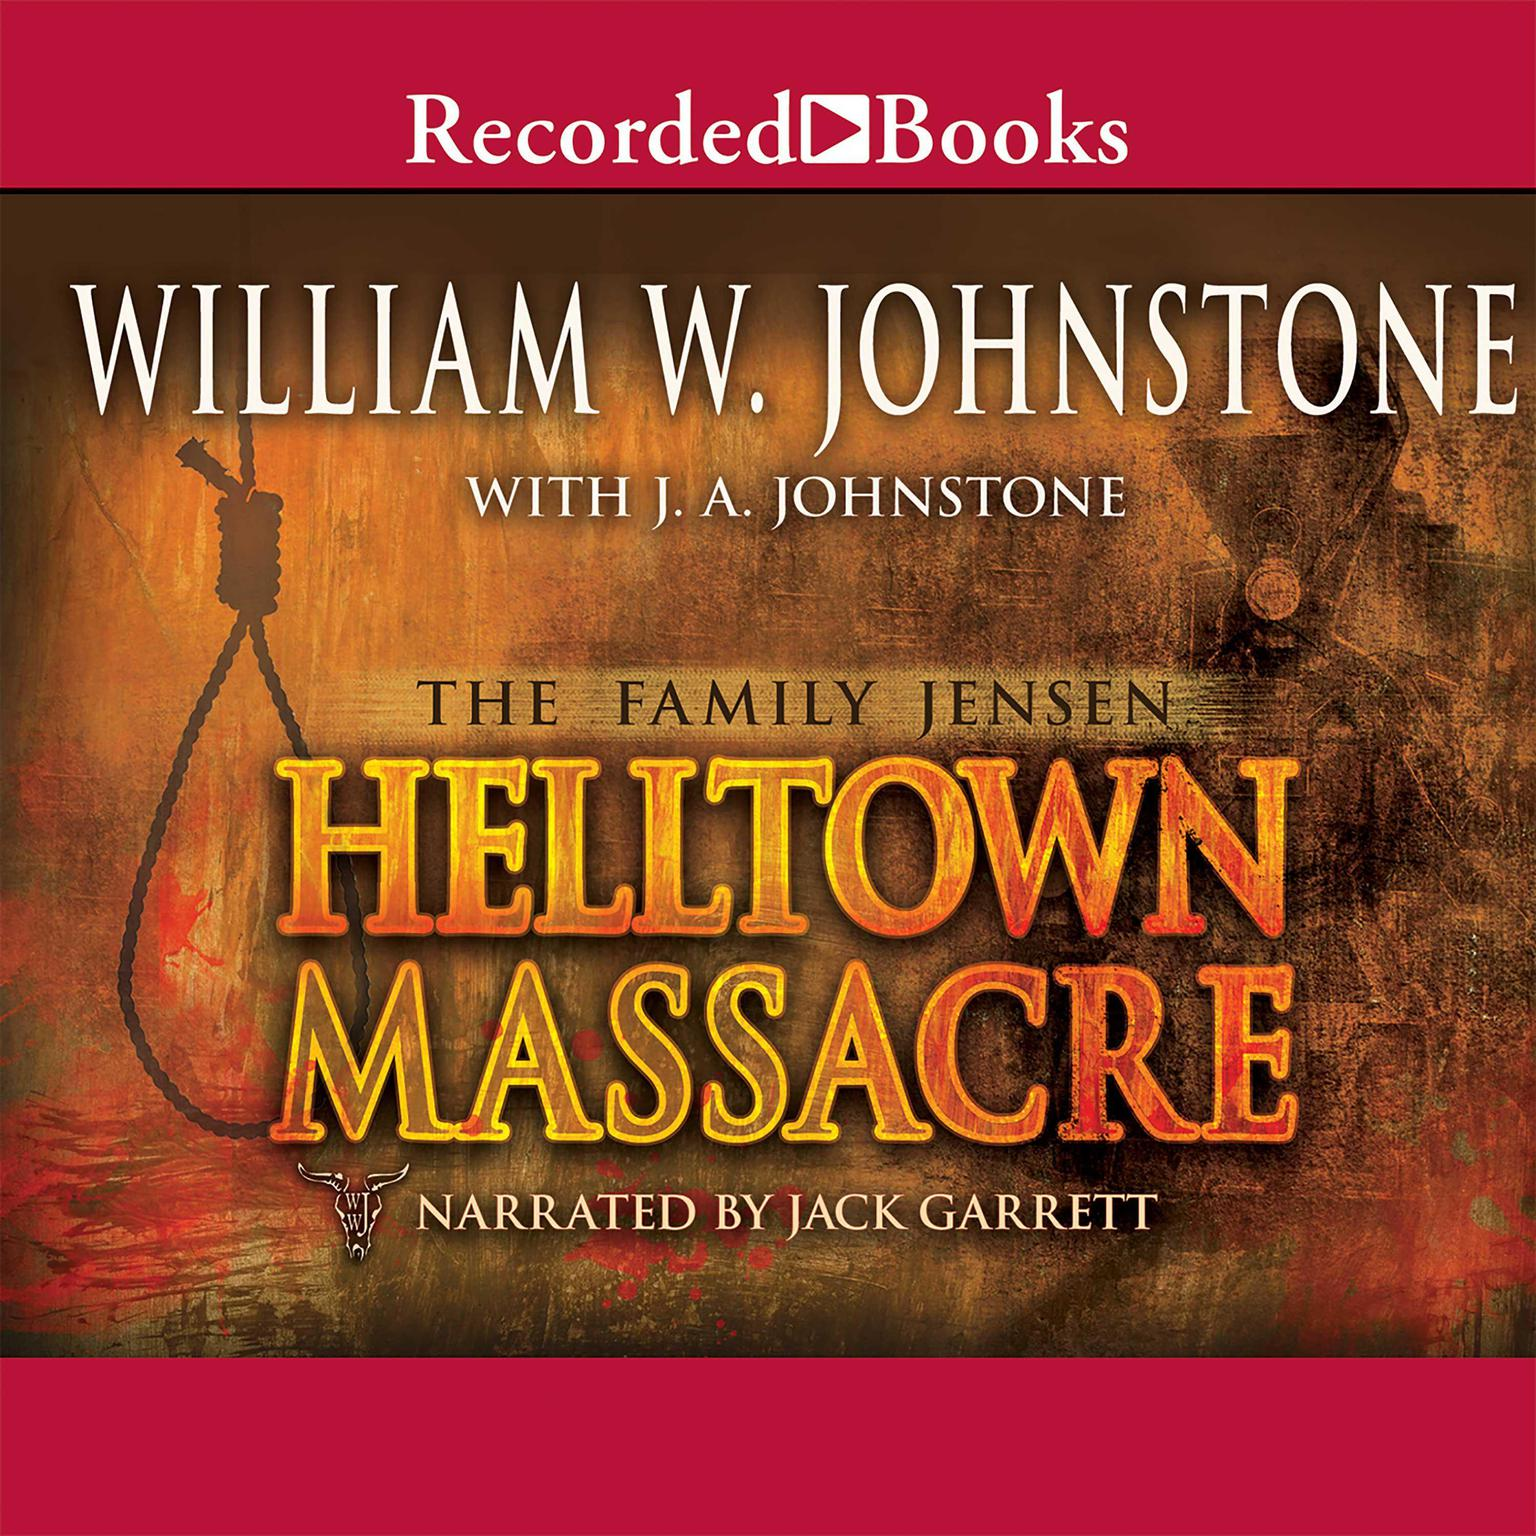 Printable Helltown Massacre Audiobook Cover Art